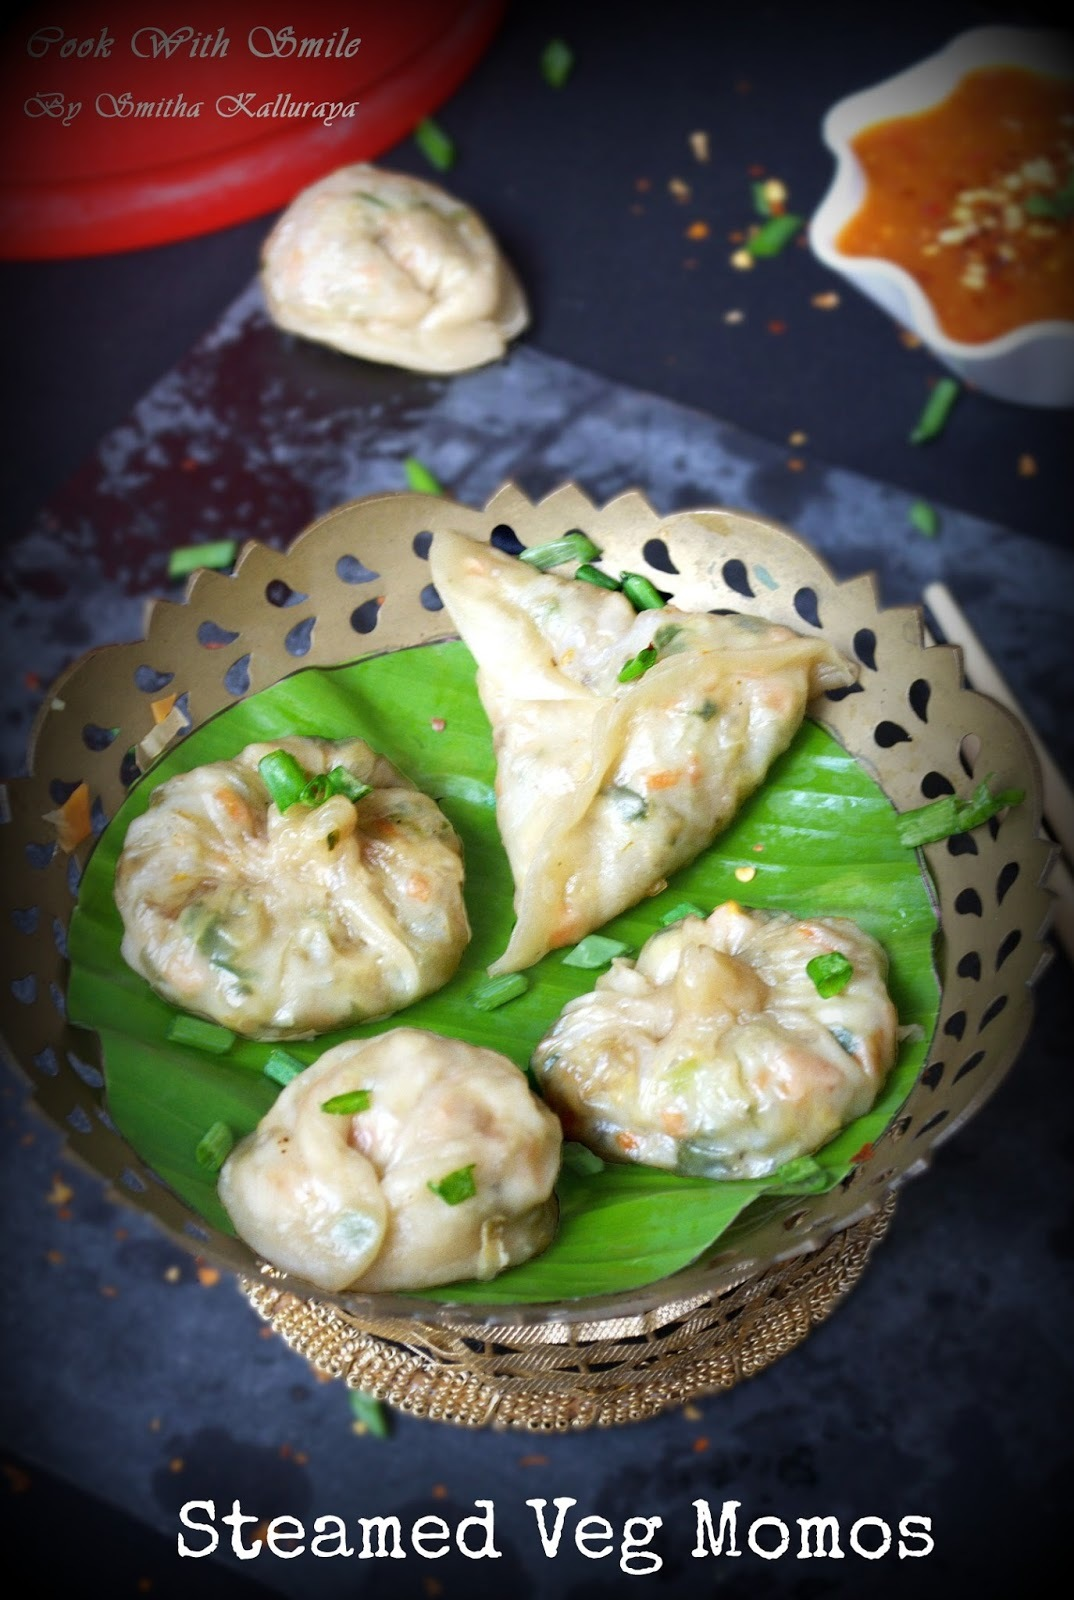 VEGETABLE MOMOS RECIPE / STEAMED VEG MOMOS WITH TUPPERWARE STEAM IT